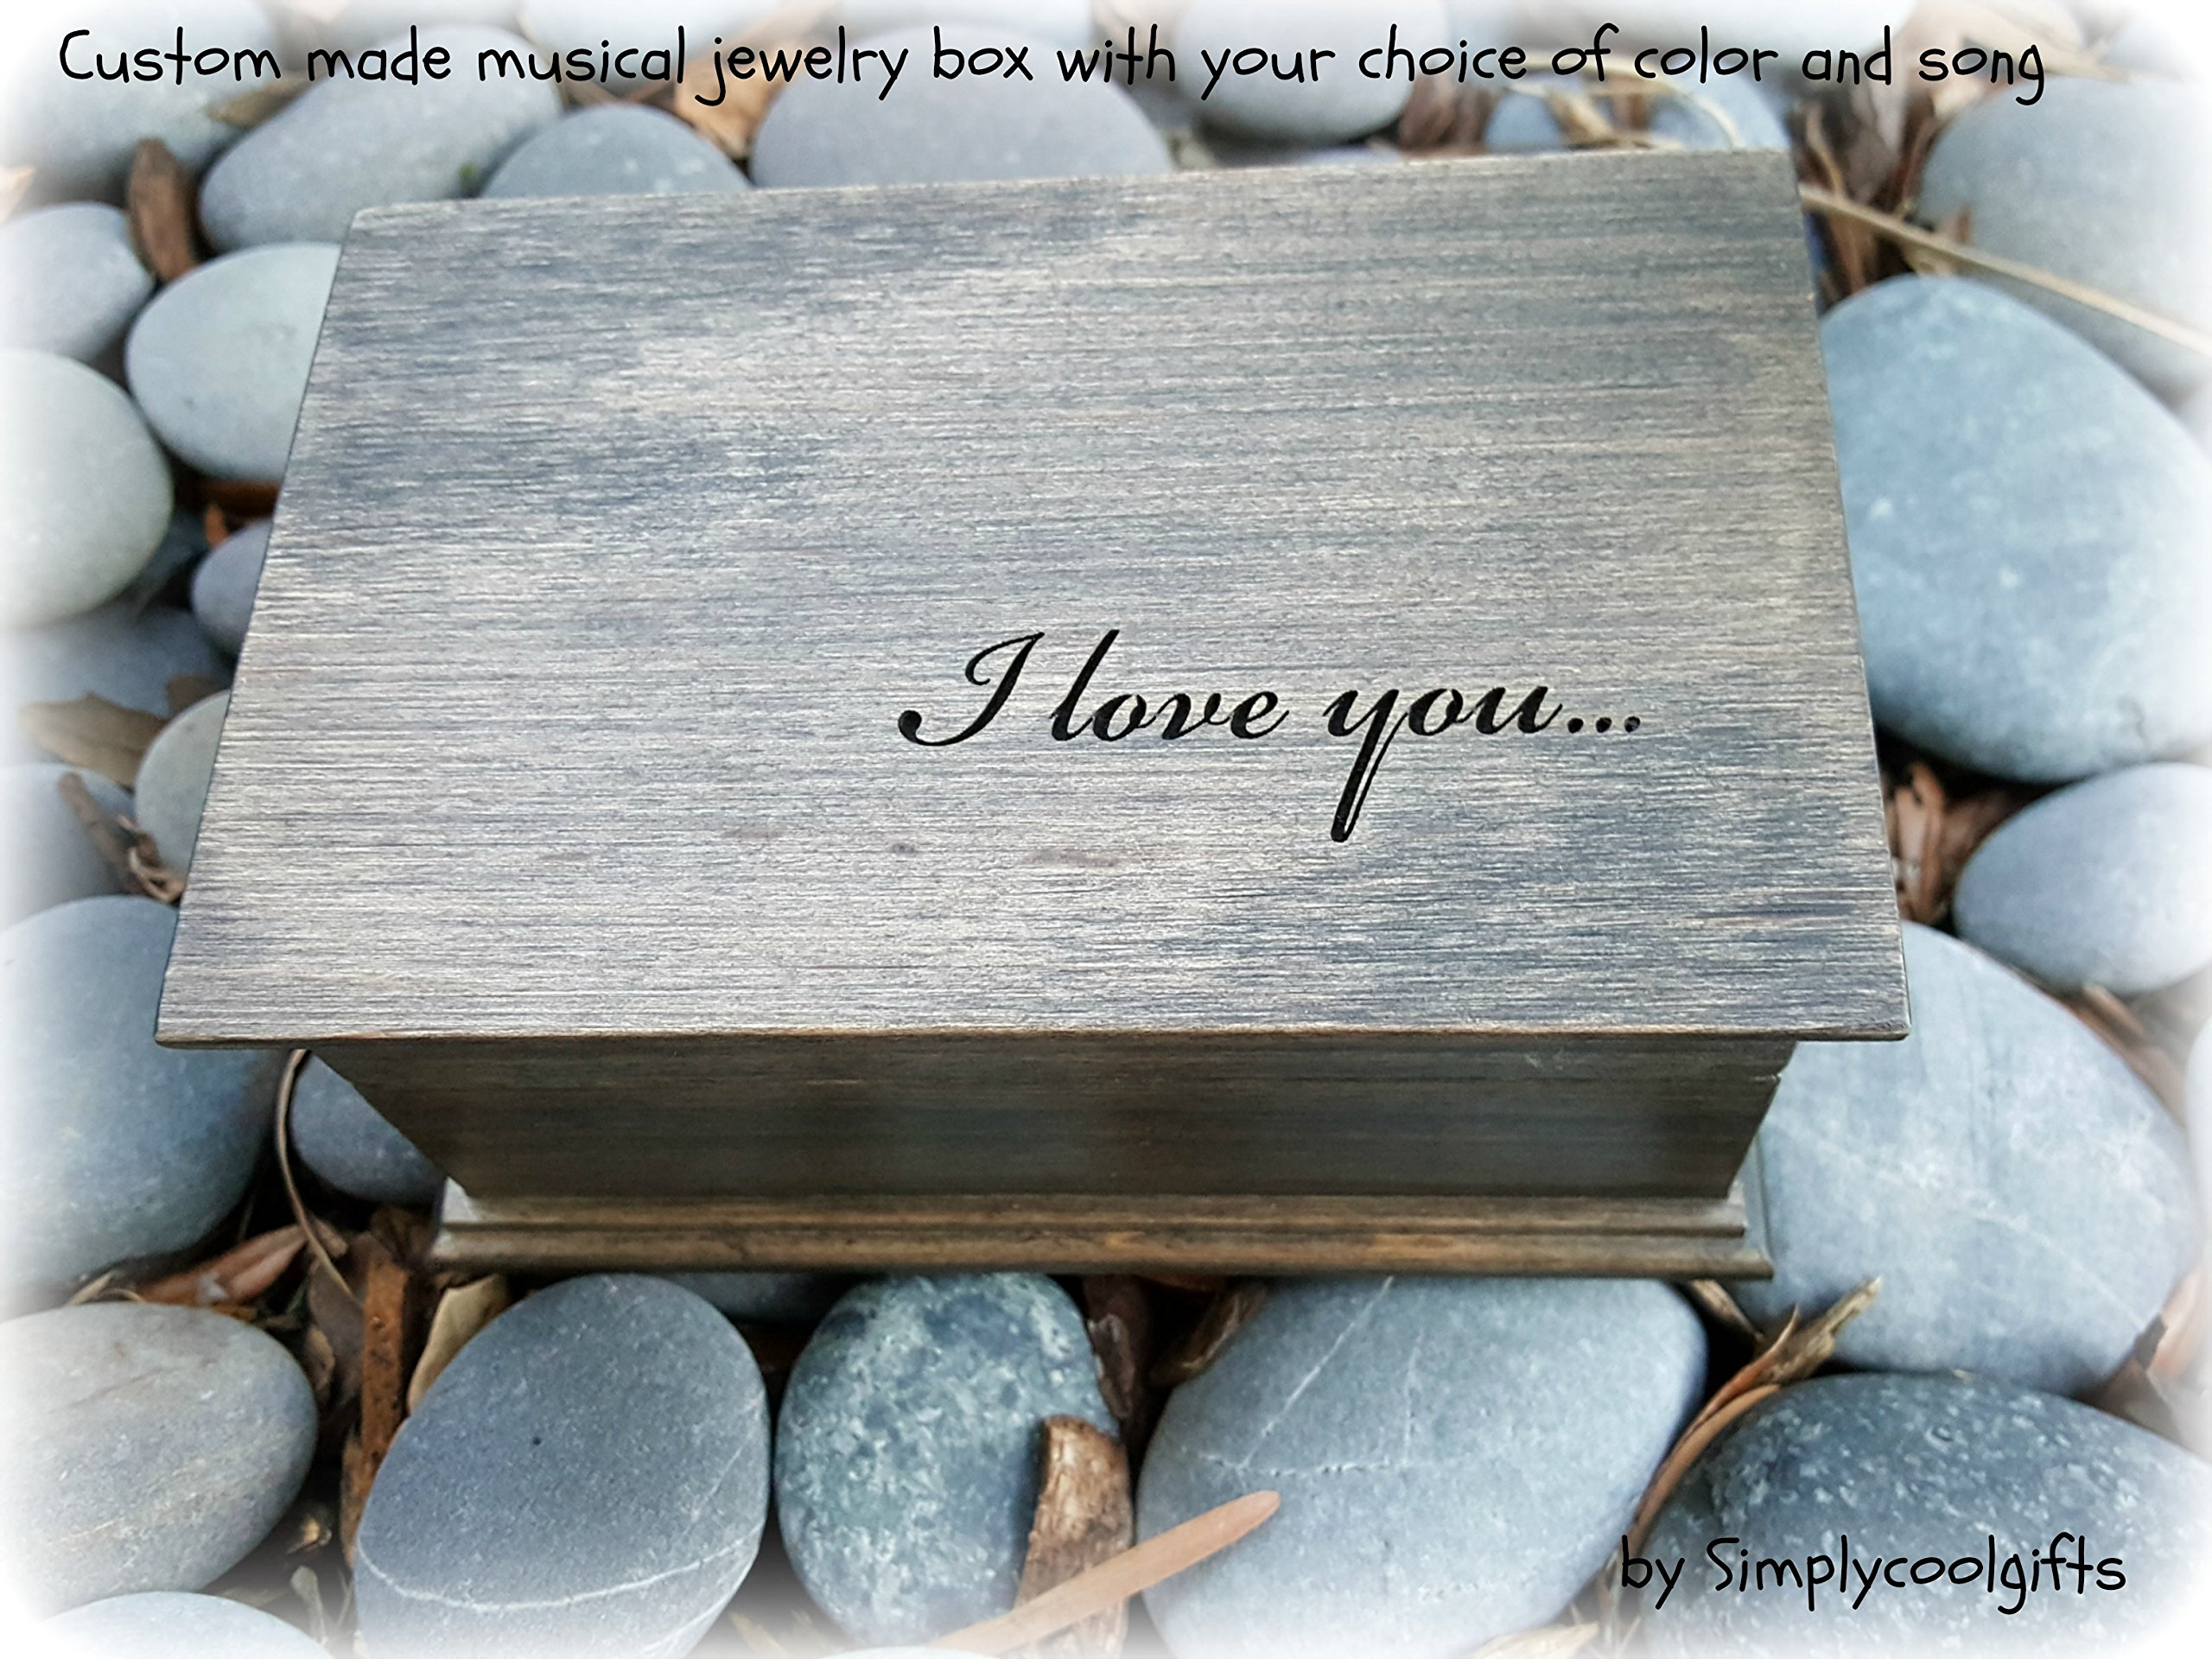 Personalized musical jewelry box with I love you engraved on top, gift for love, great gift for fifth anniversary handmade by Simplycoolgifts by Simplycoolgifts